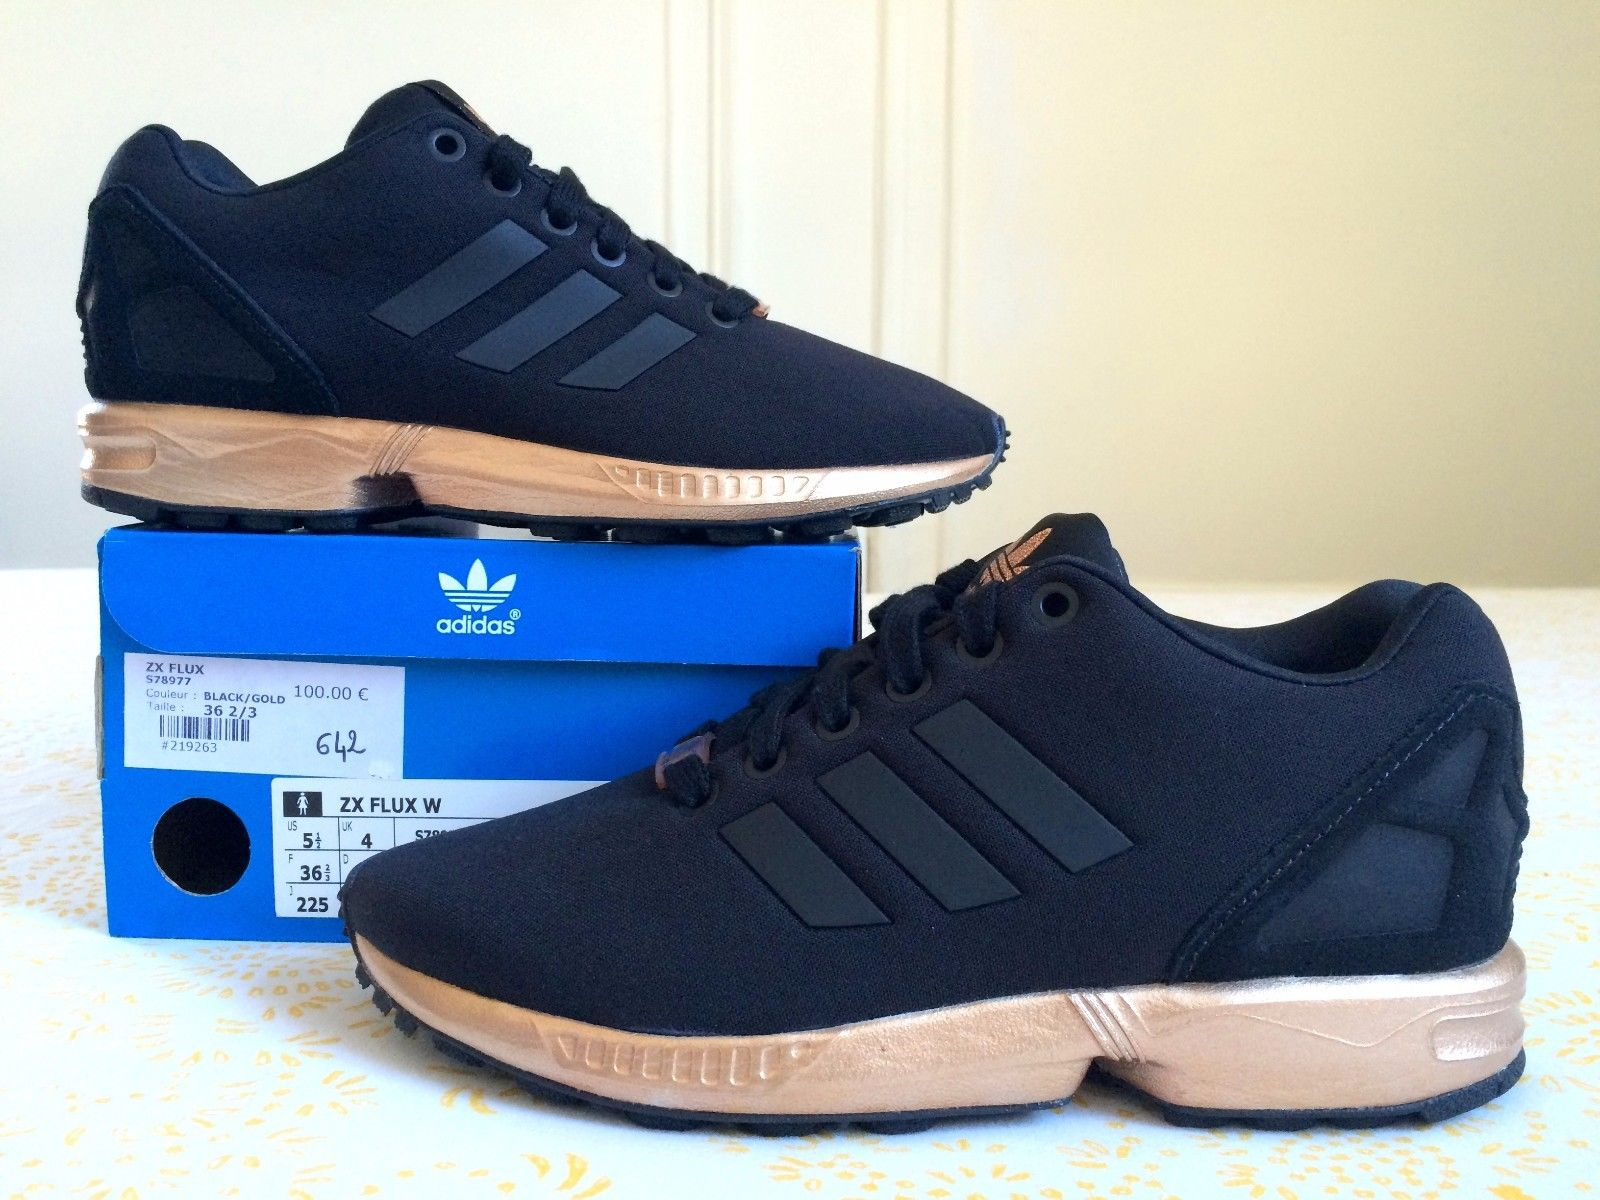 sale retailer eda1c 986f2 sale adidas zx flux black and gold pret 32e18 72cbc